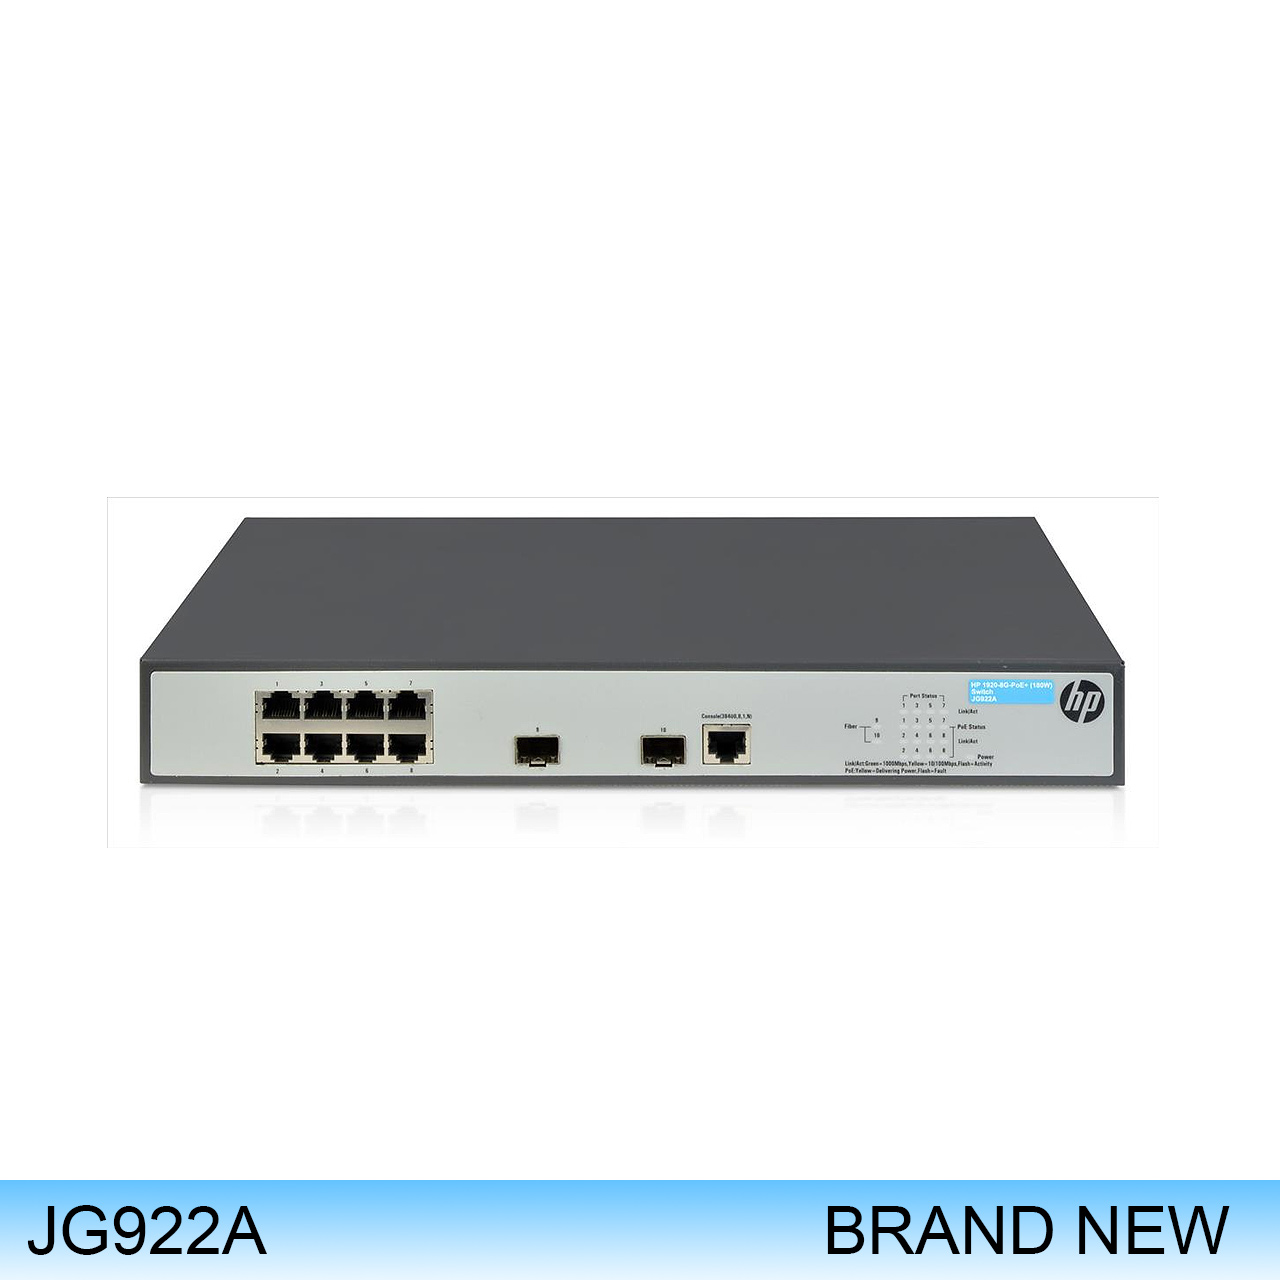 JG922A | HP PROCURVE SWITCH 1920-8G-PoE+ (180W)